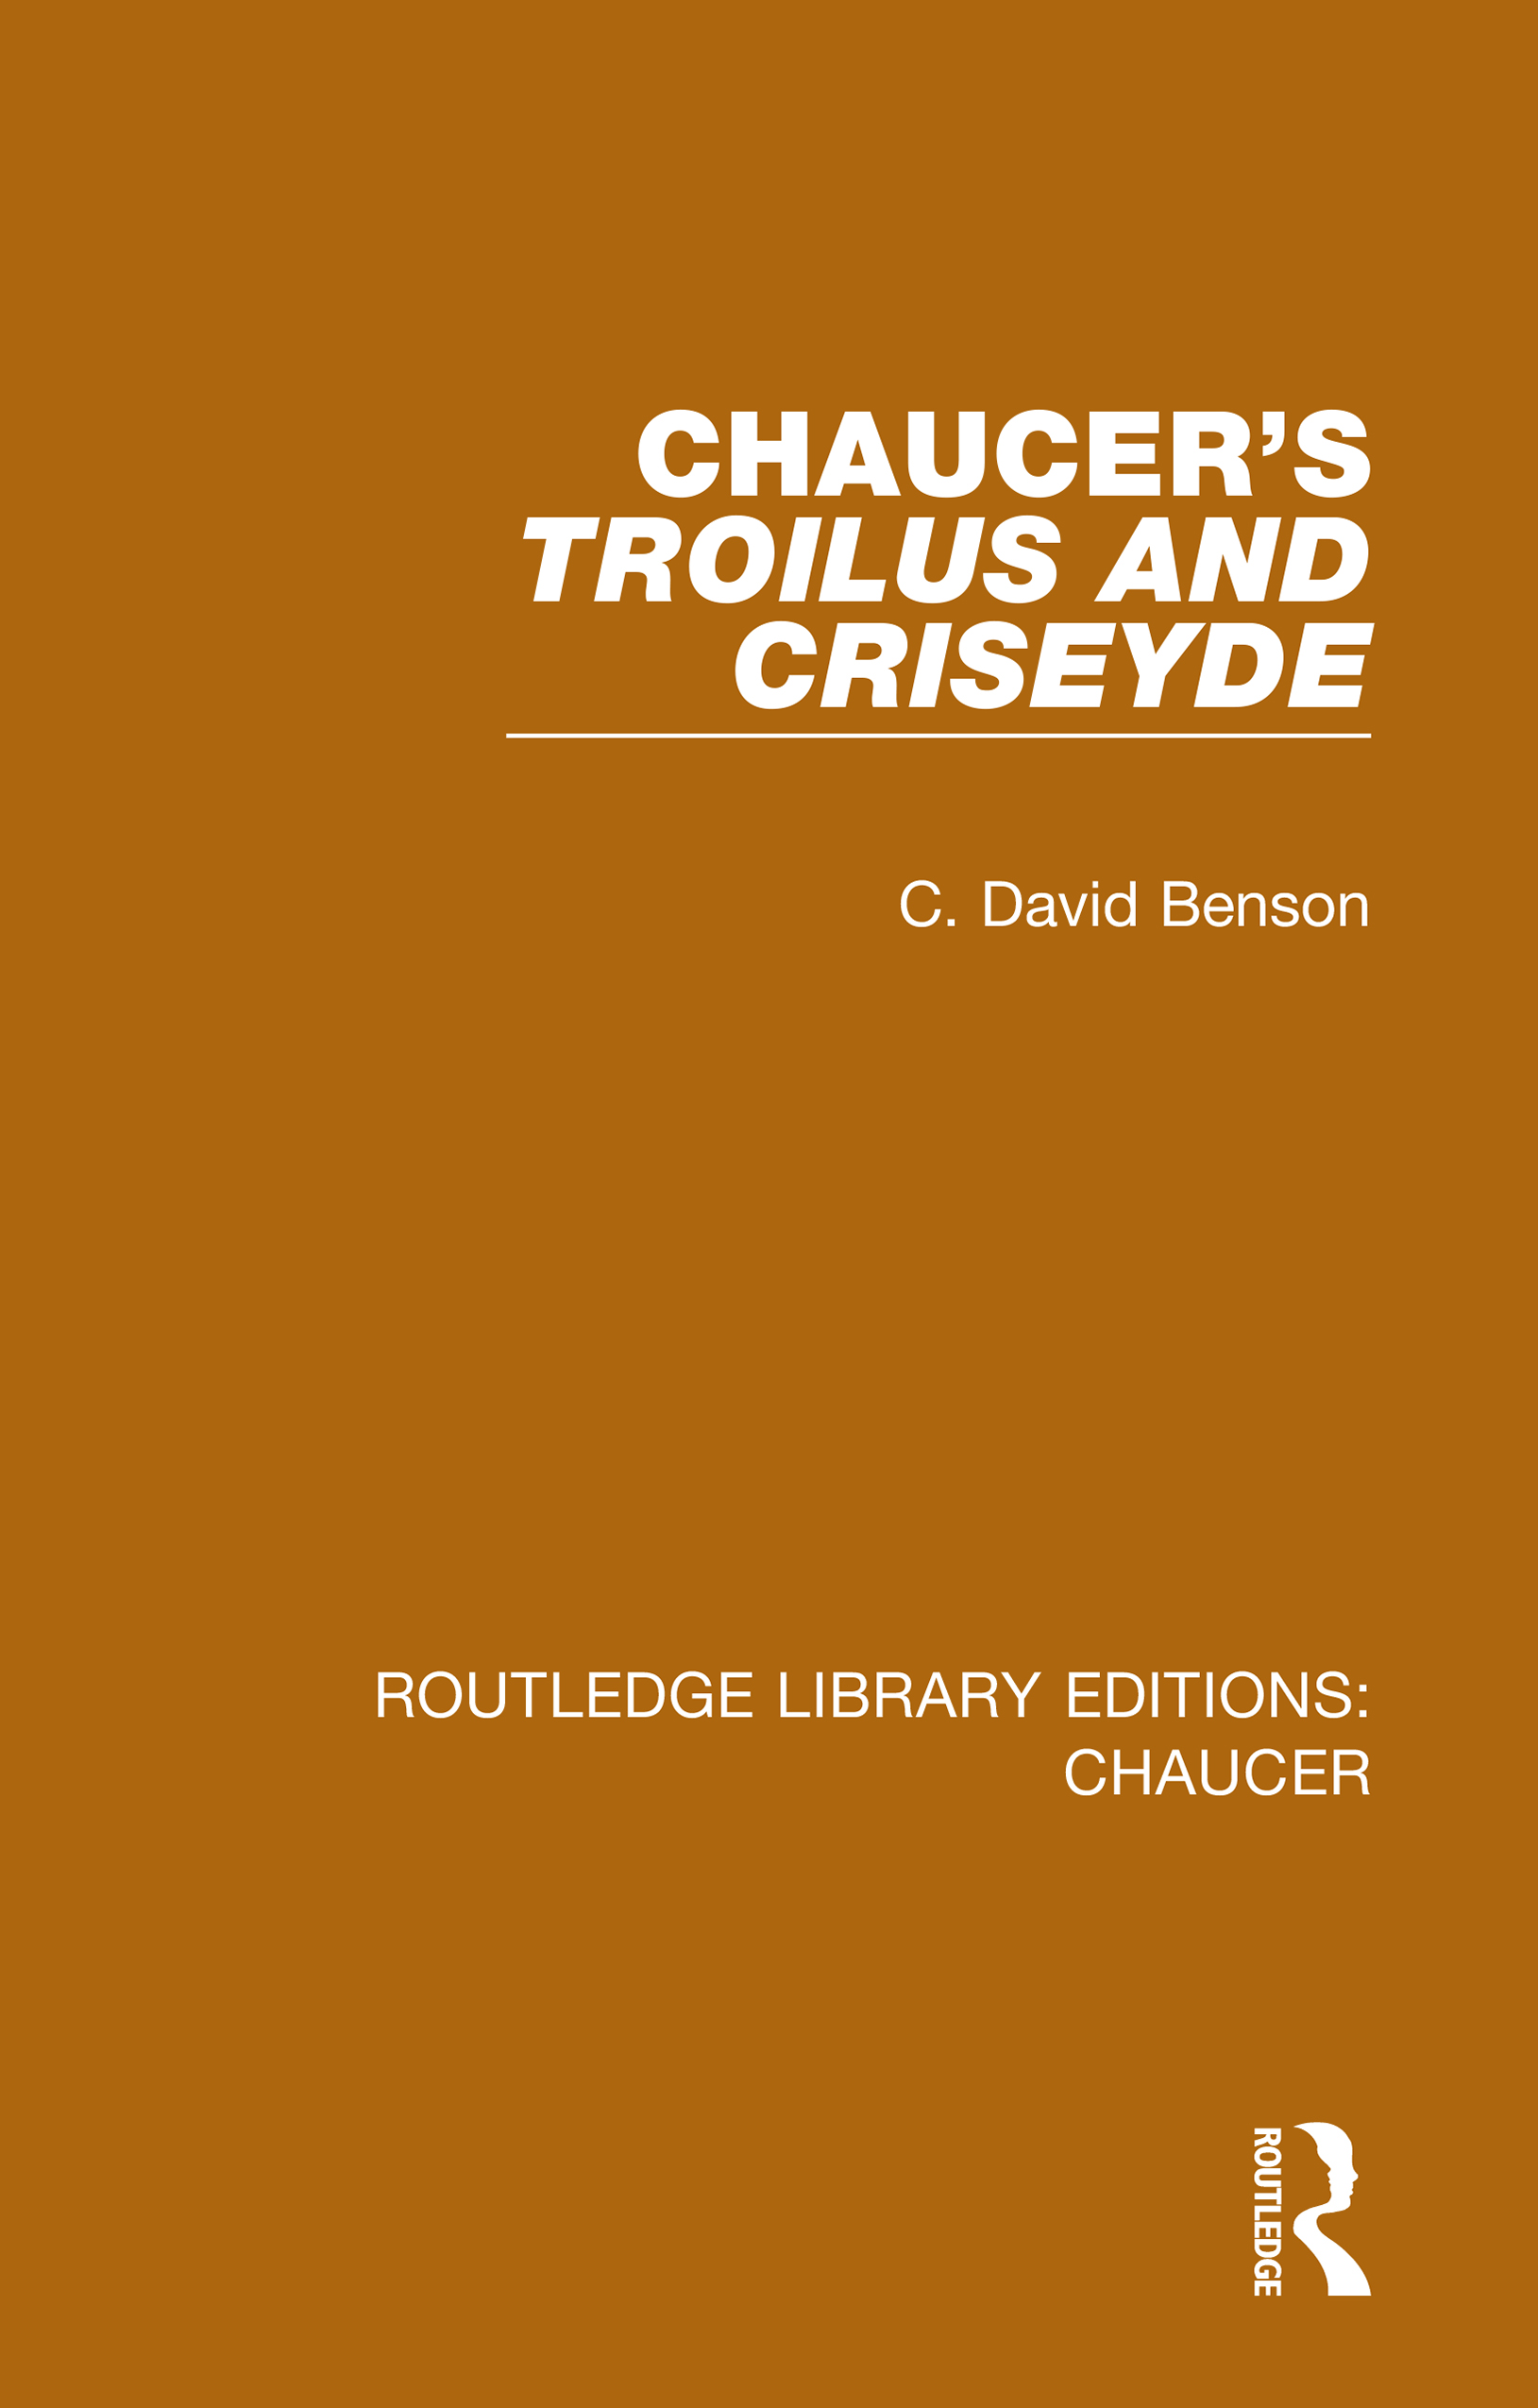 Chaucer's Troilus and Criseyde